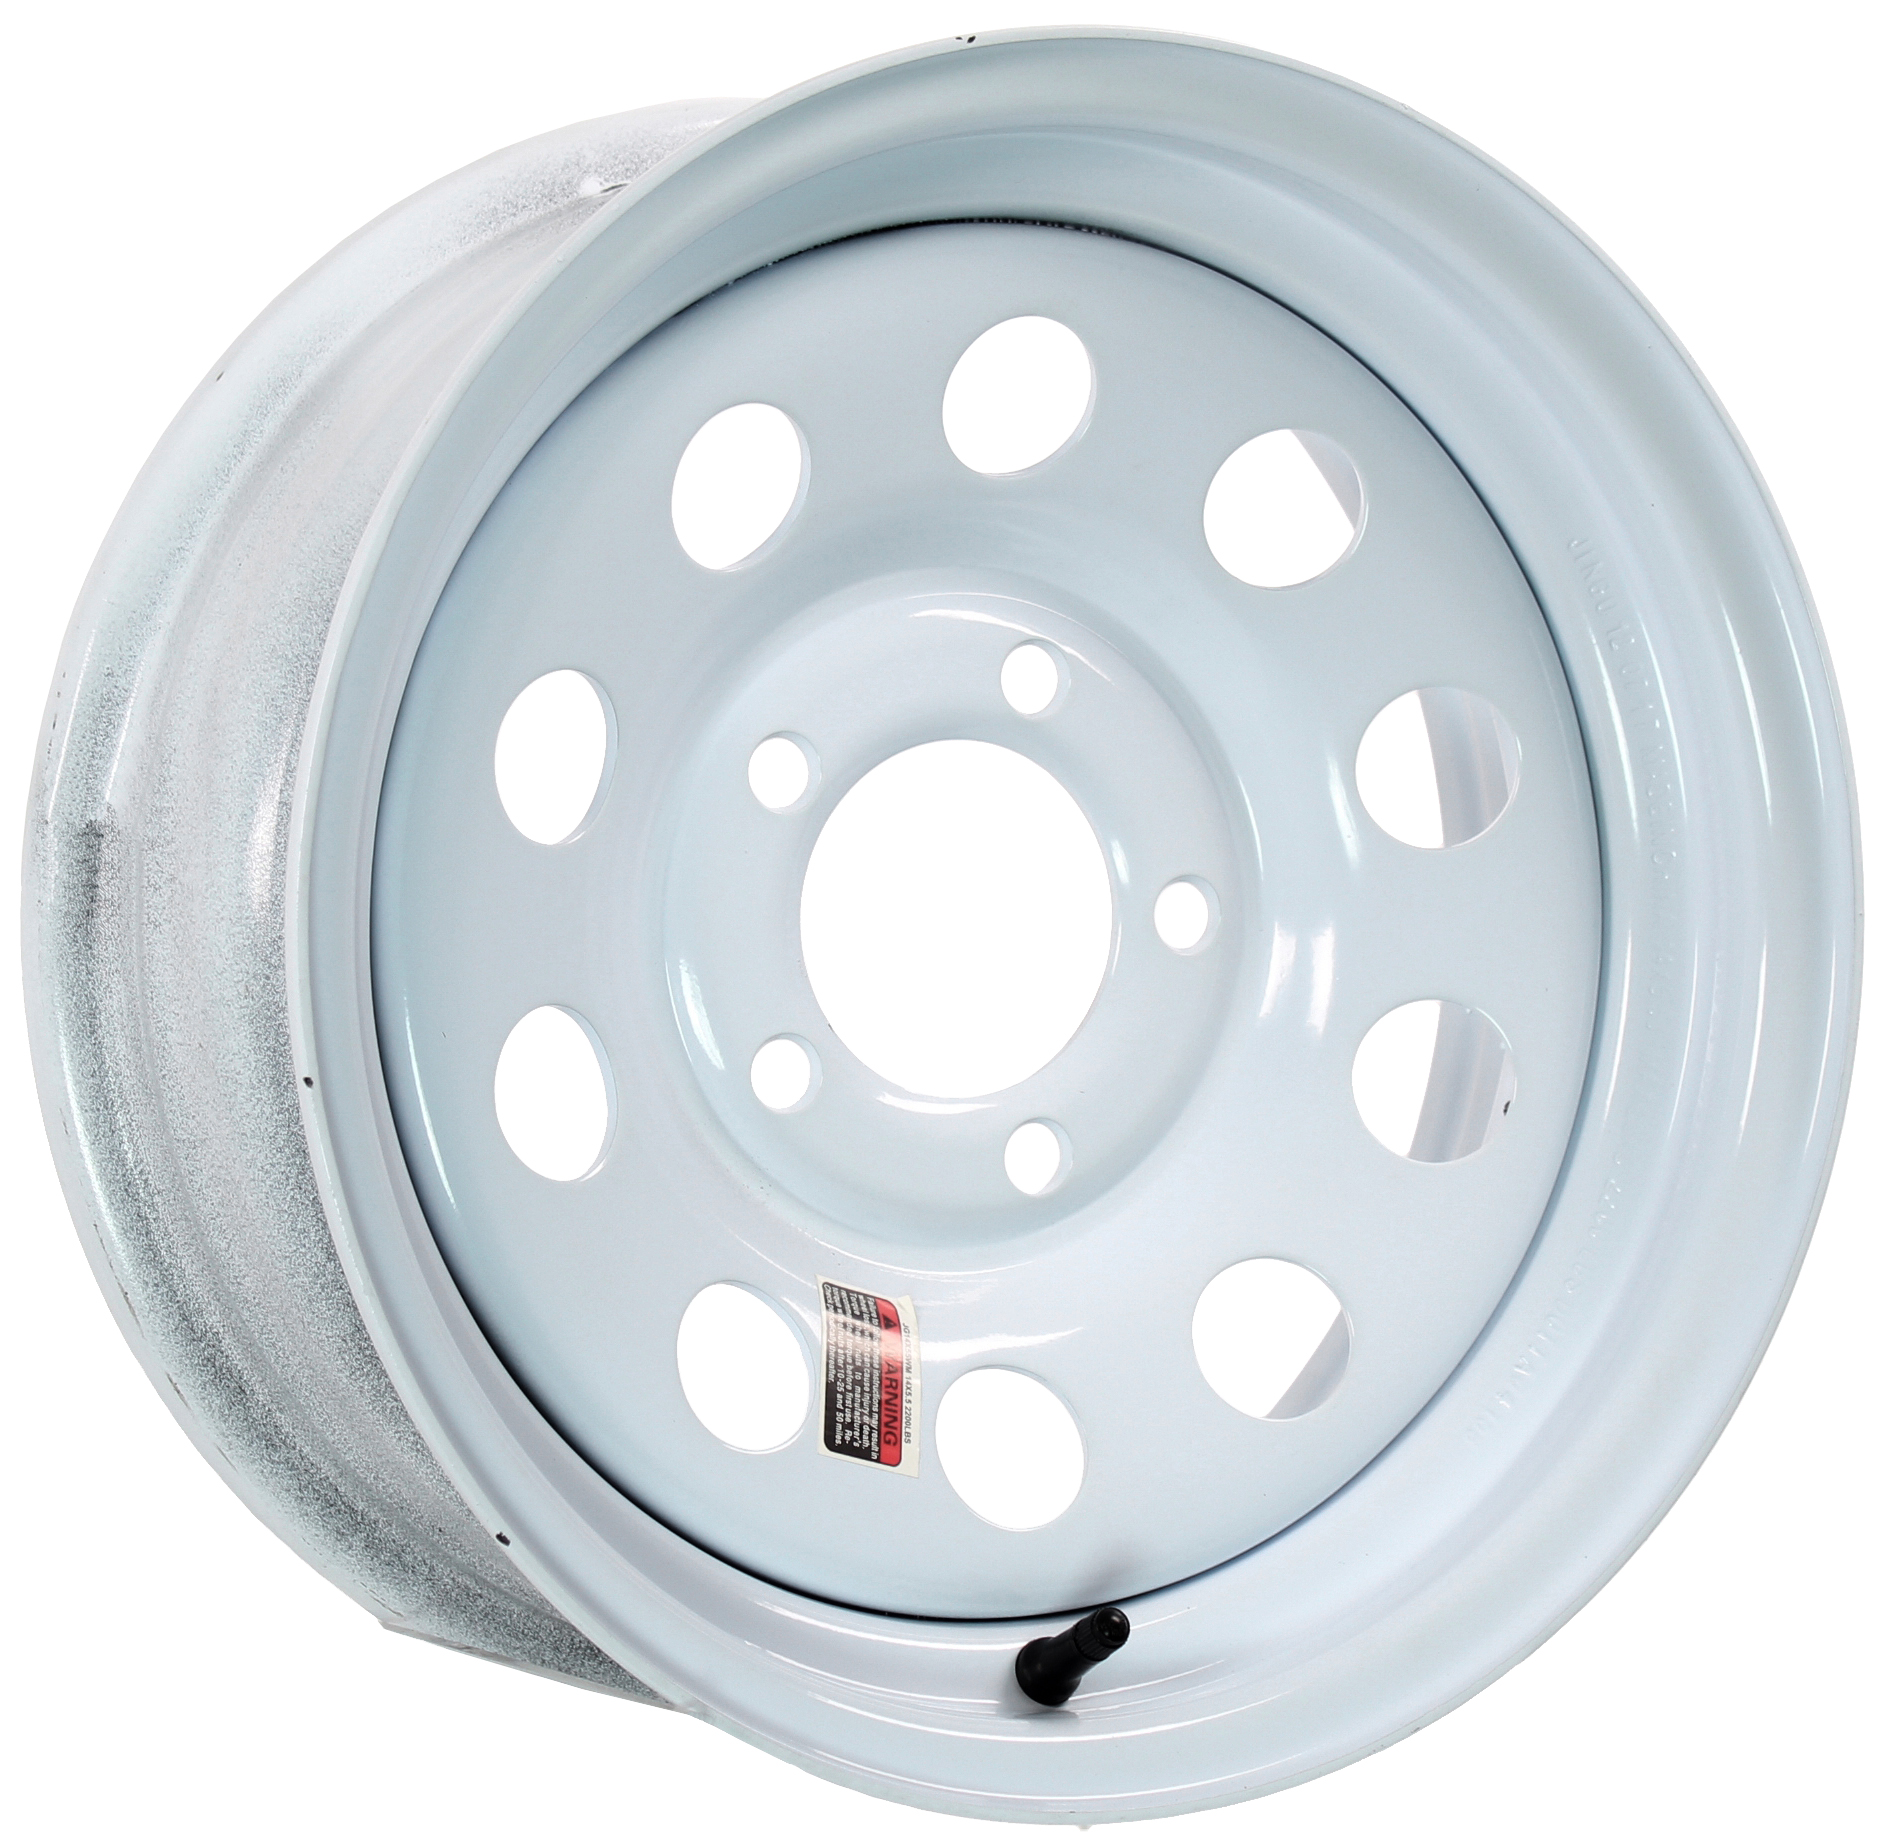 14x5.5 5-Lug White Mod Steel Trailer Wheel Image